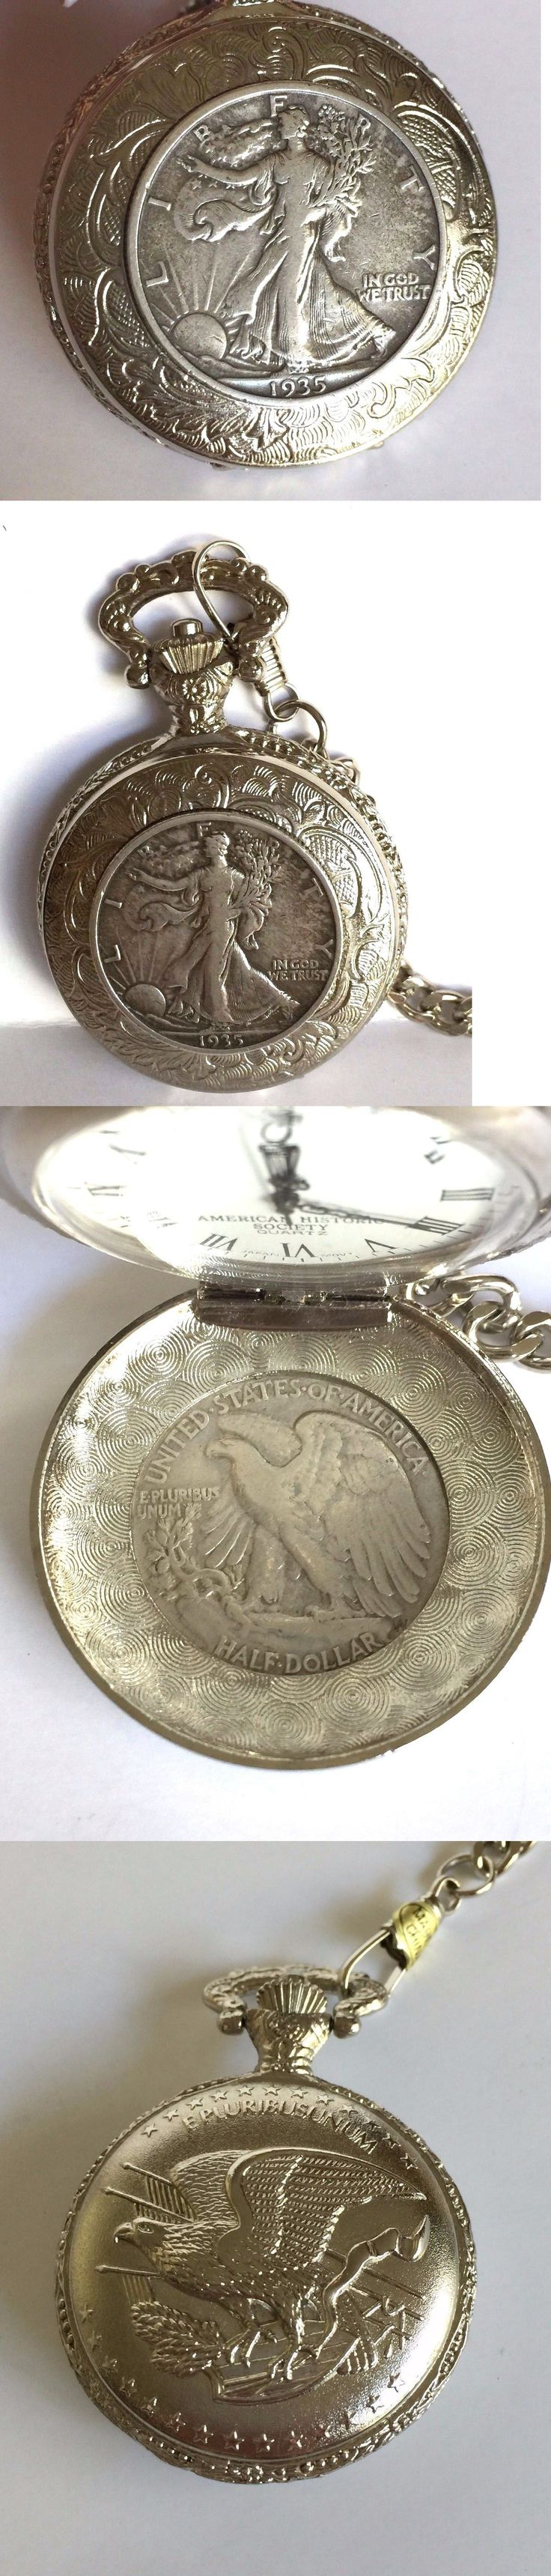 Other Pocket Watches 398: Us Historic Society Walking Liberty Half $ Quartz Pocket Watch W Fob And Display -> BUY IT NOW ONLY: $100 on eBay!